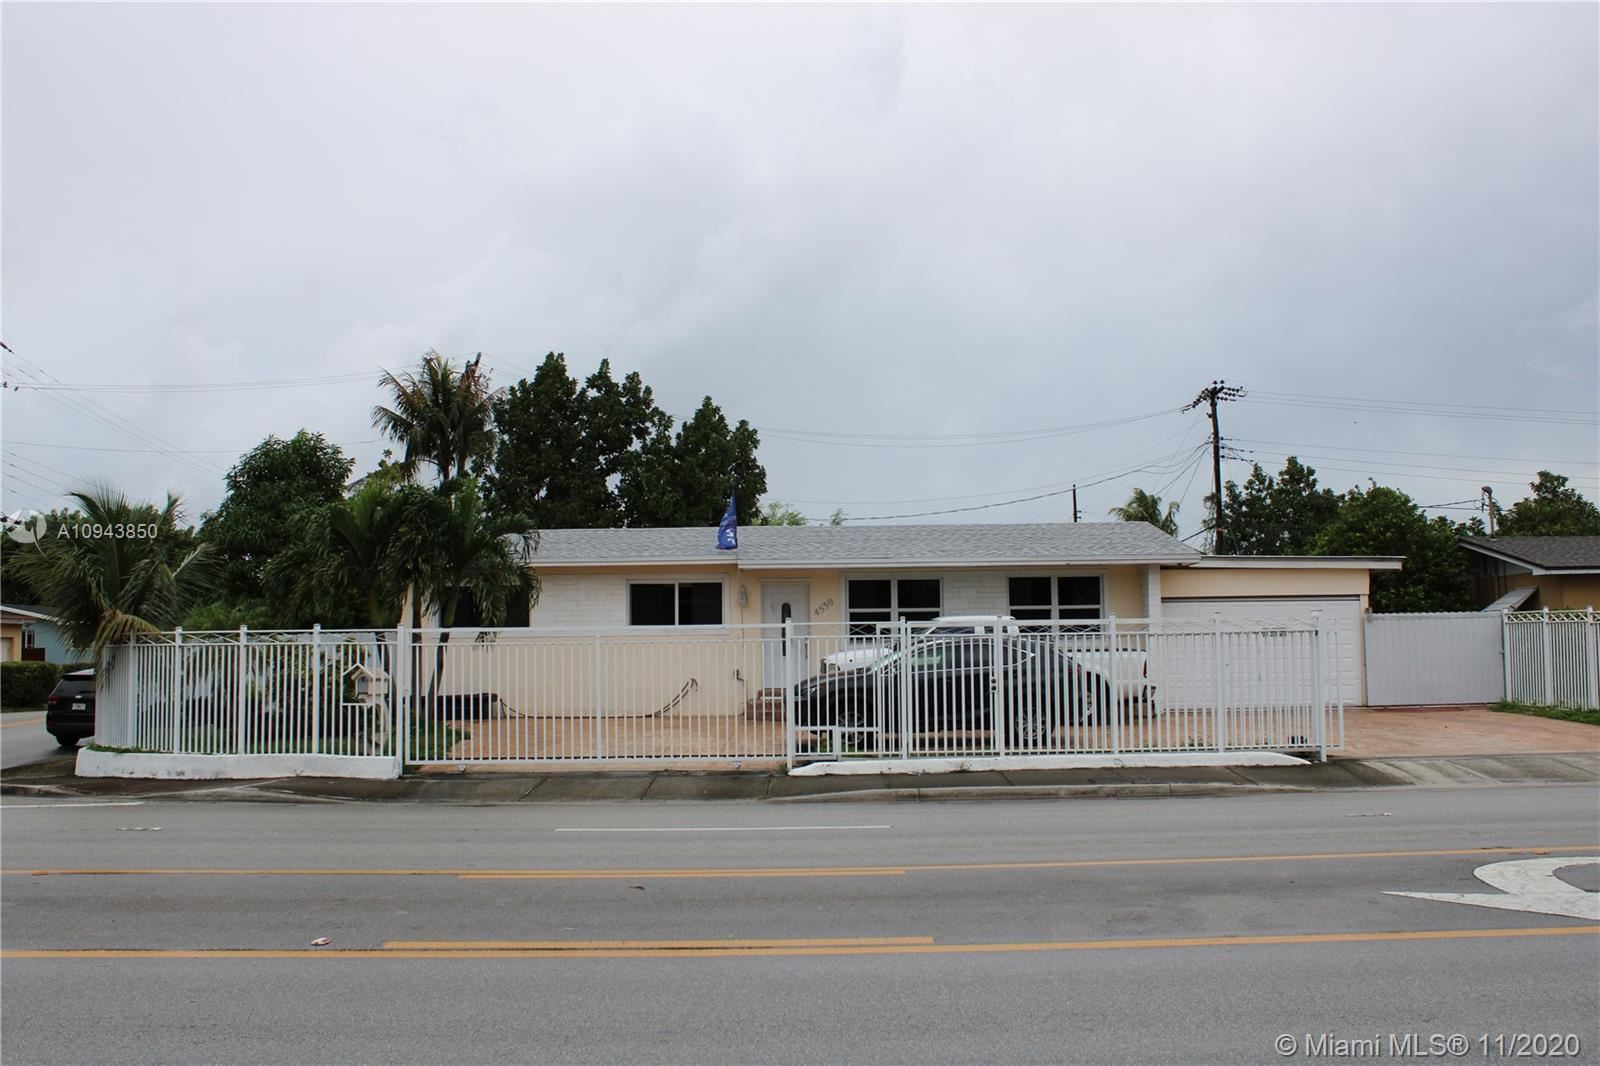 4530 W 8th Ave, Hialeah, FL 33012 - #: A10943850